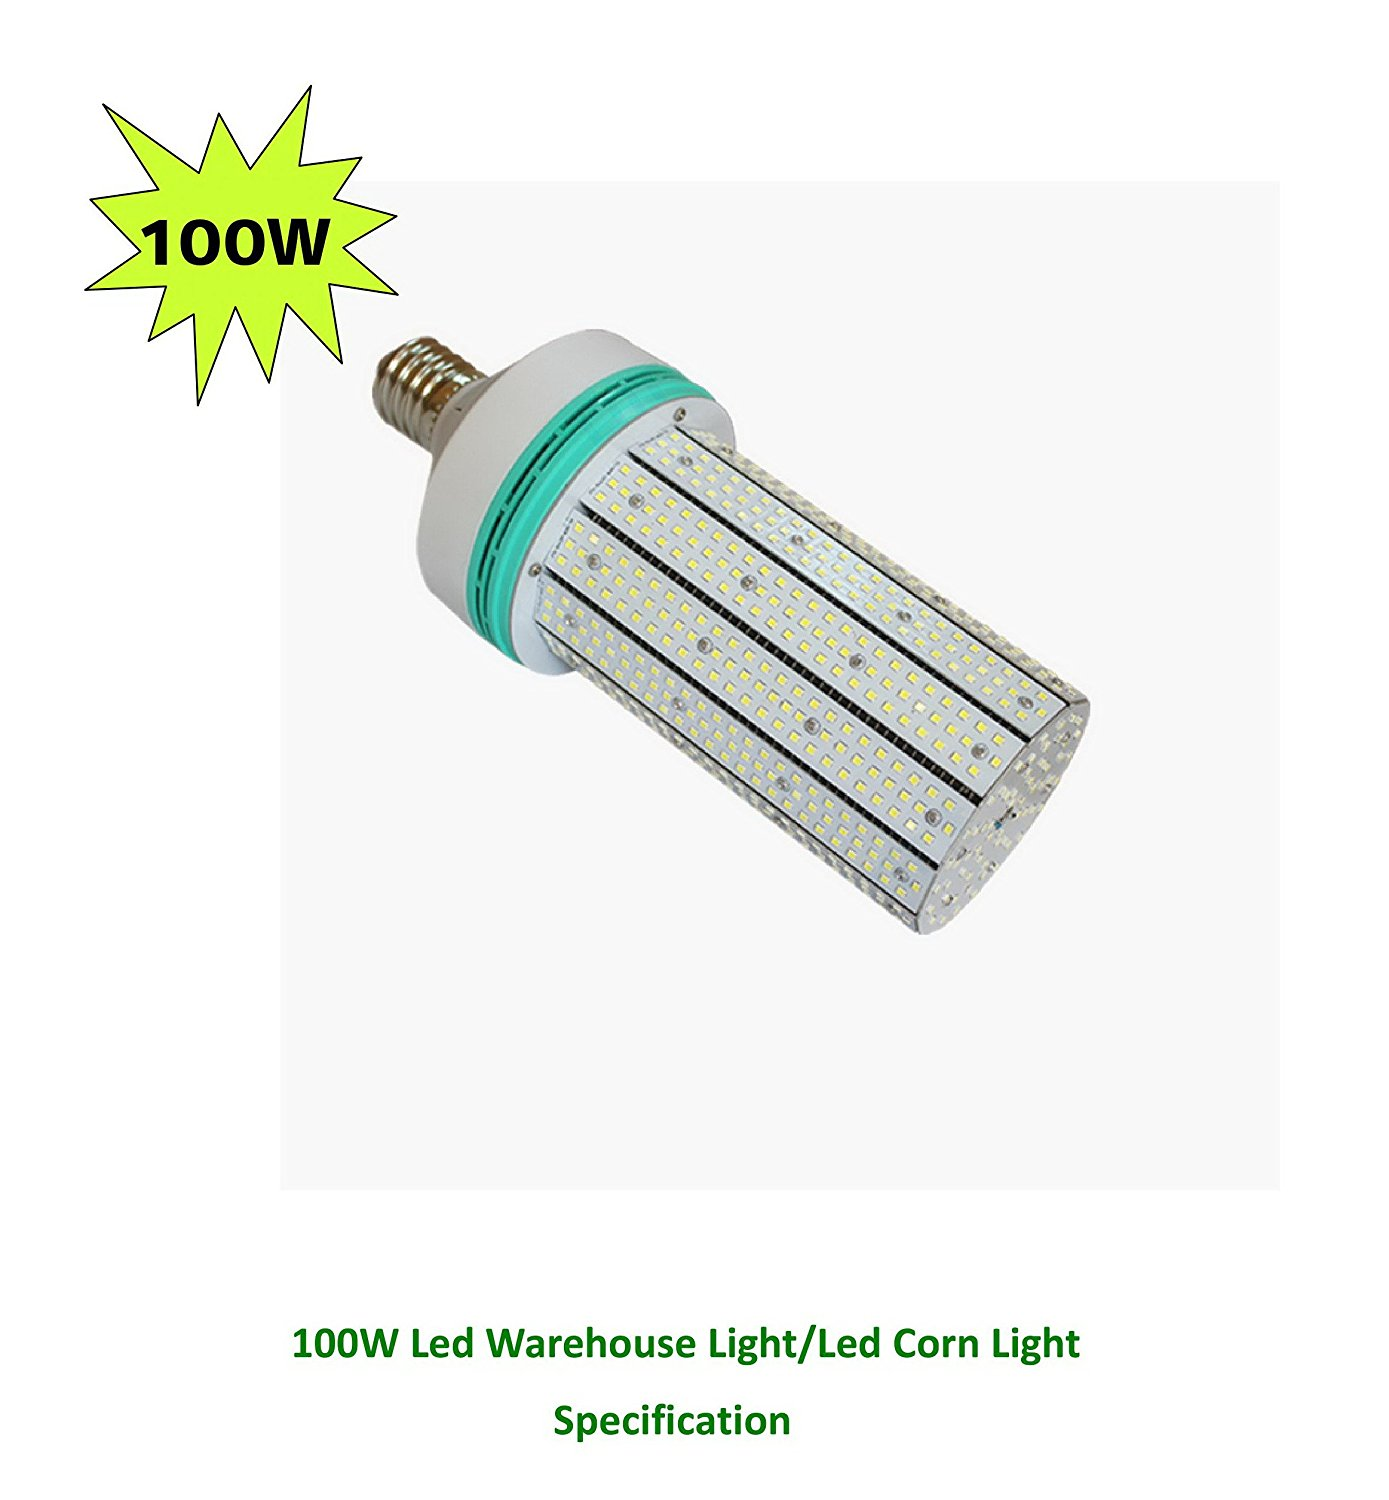 Leson 500W Equivalent E39/E40 Mogul Base 100W Daylight 6000K LED Corn Light Bulb,Super Bright AC 100-277V for Parking Lot Street Lamp Post Lighting Garage Warehouse High Bay Barn Porch Backyard Garden